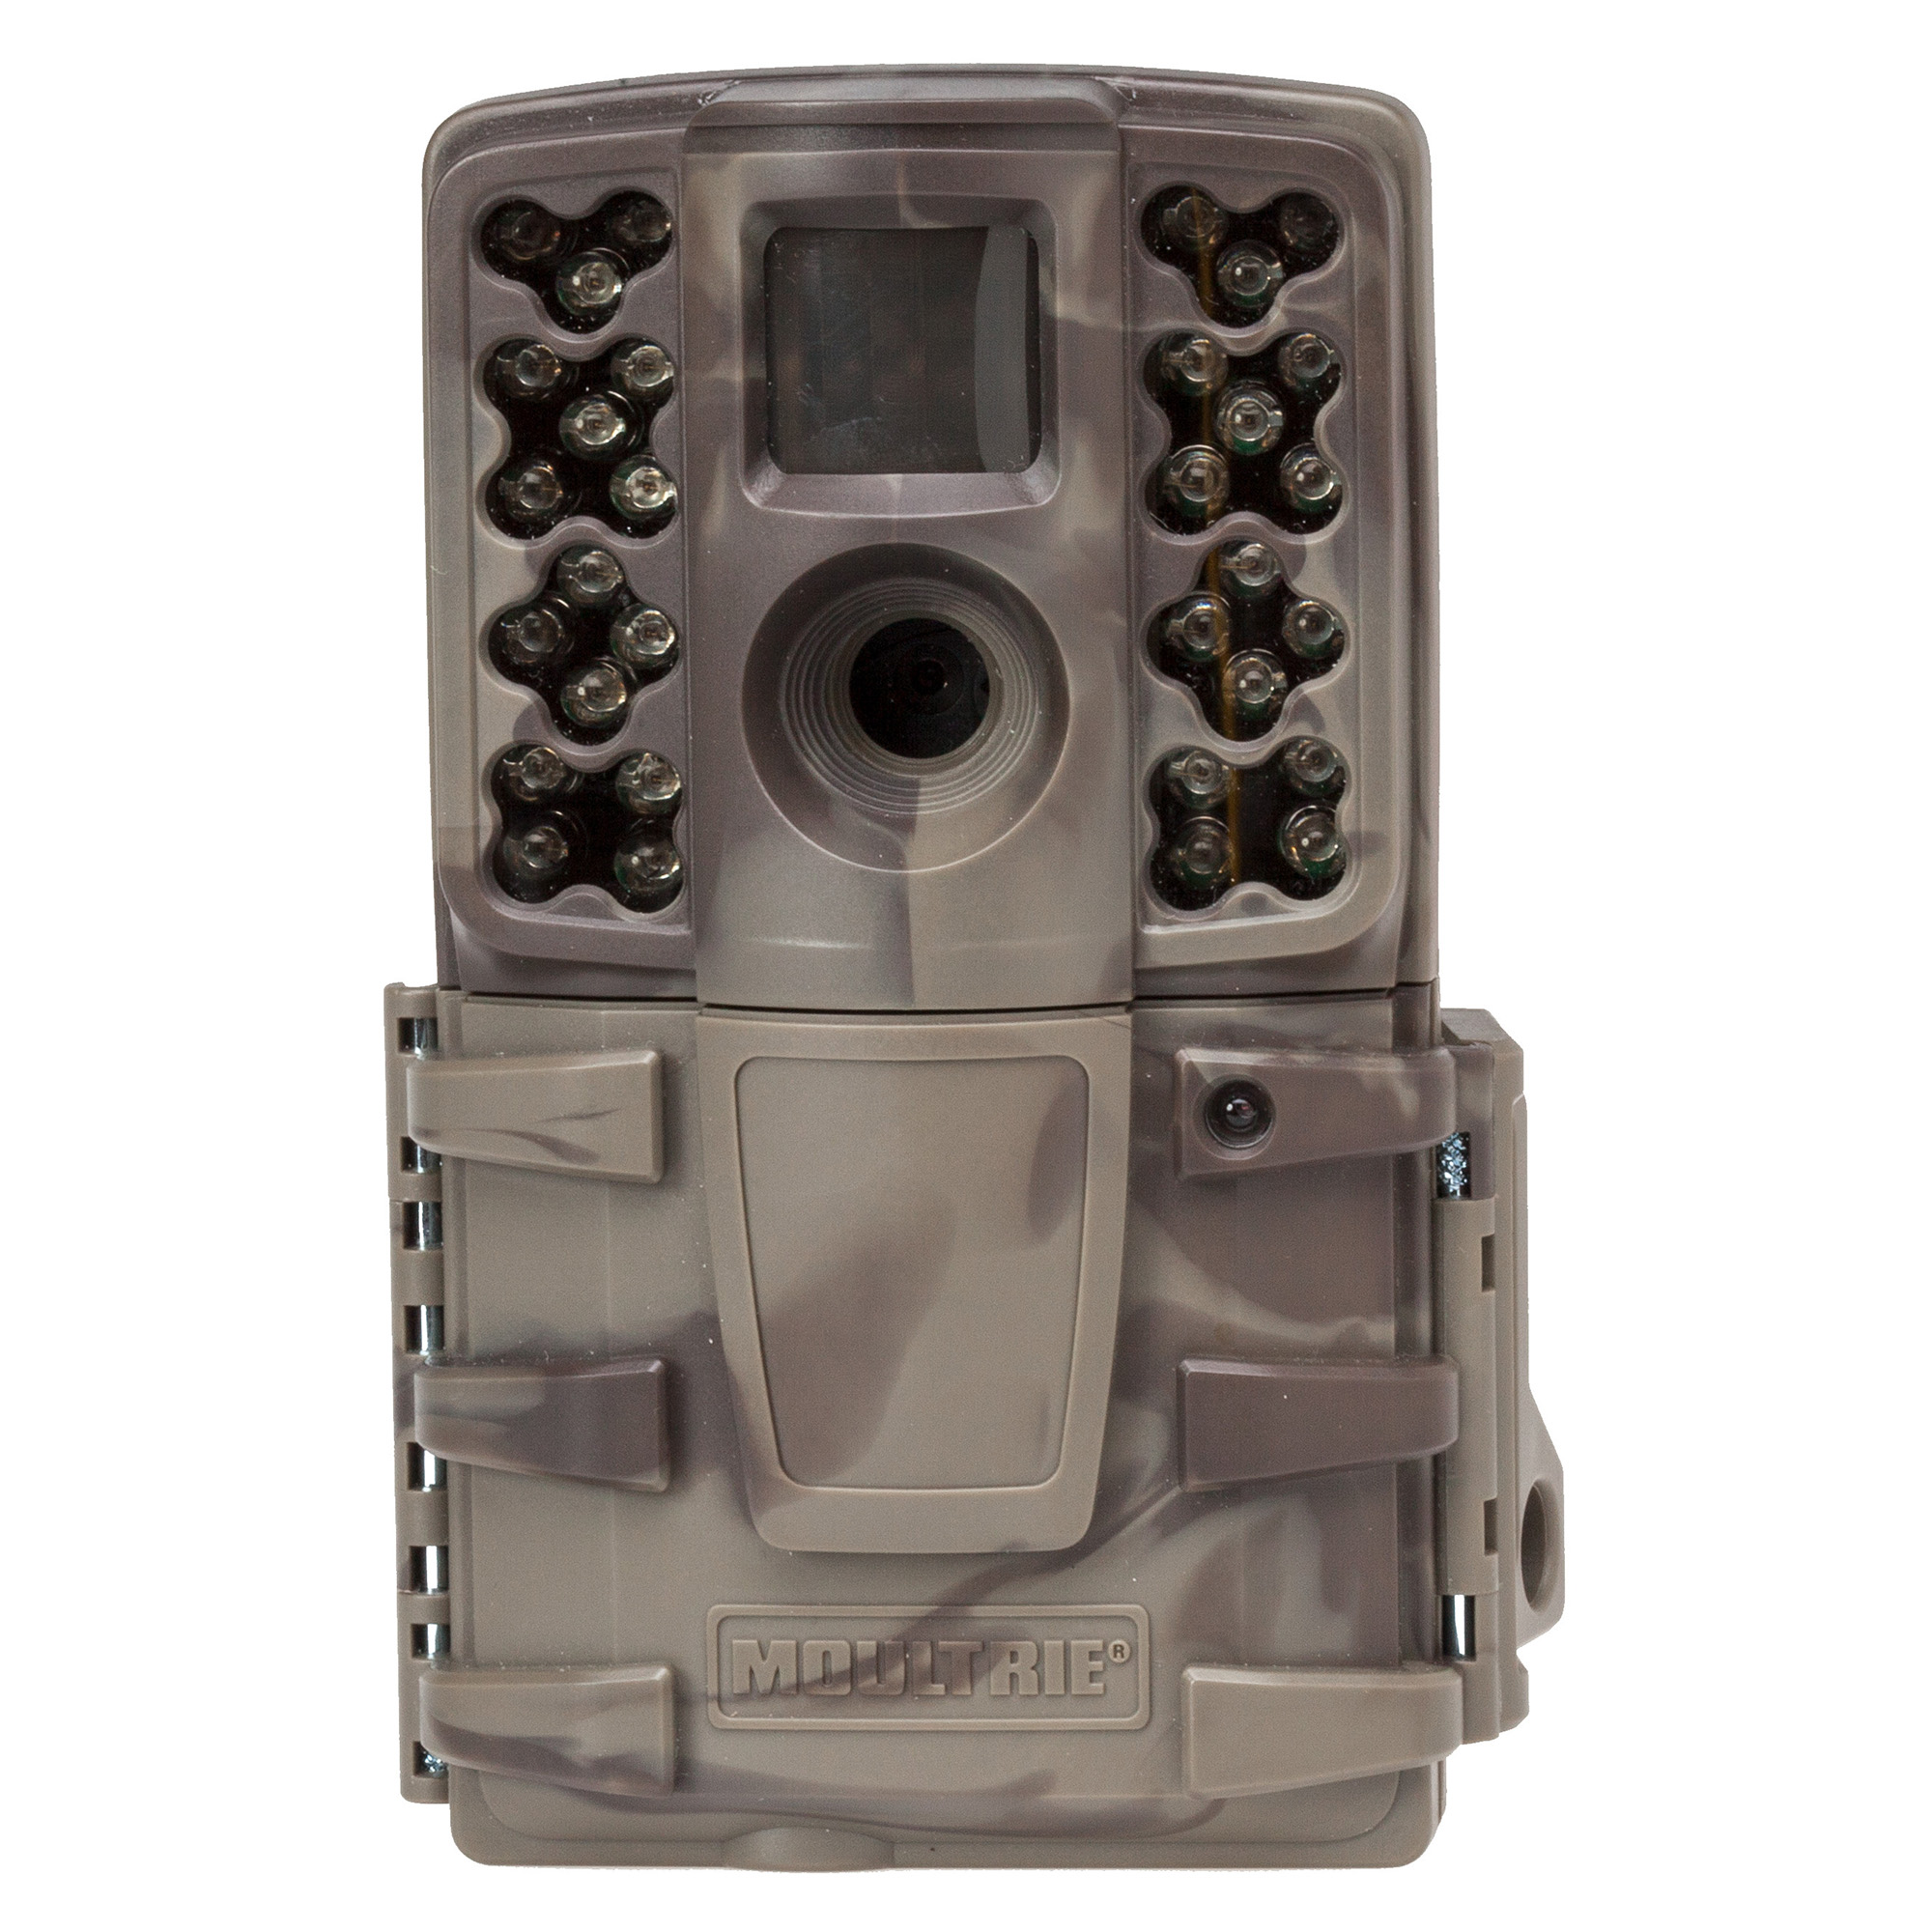 Moultrie No Glow Invisible 12 MP Mini A20i Infrared Trail Game Camera A-20i